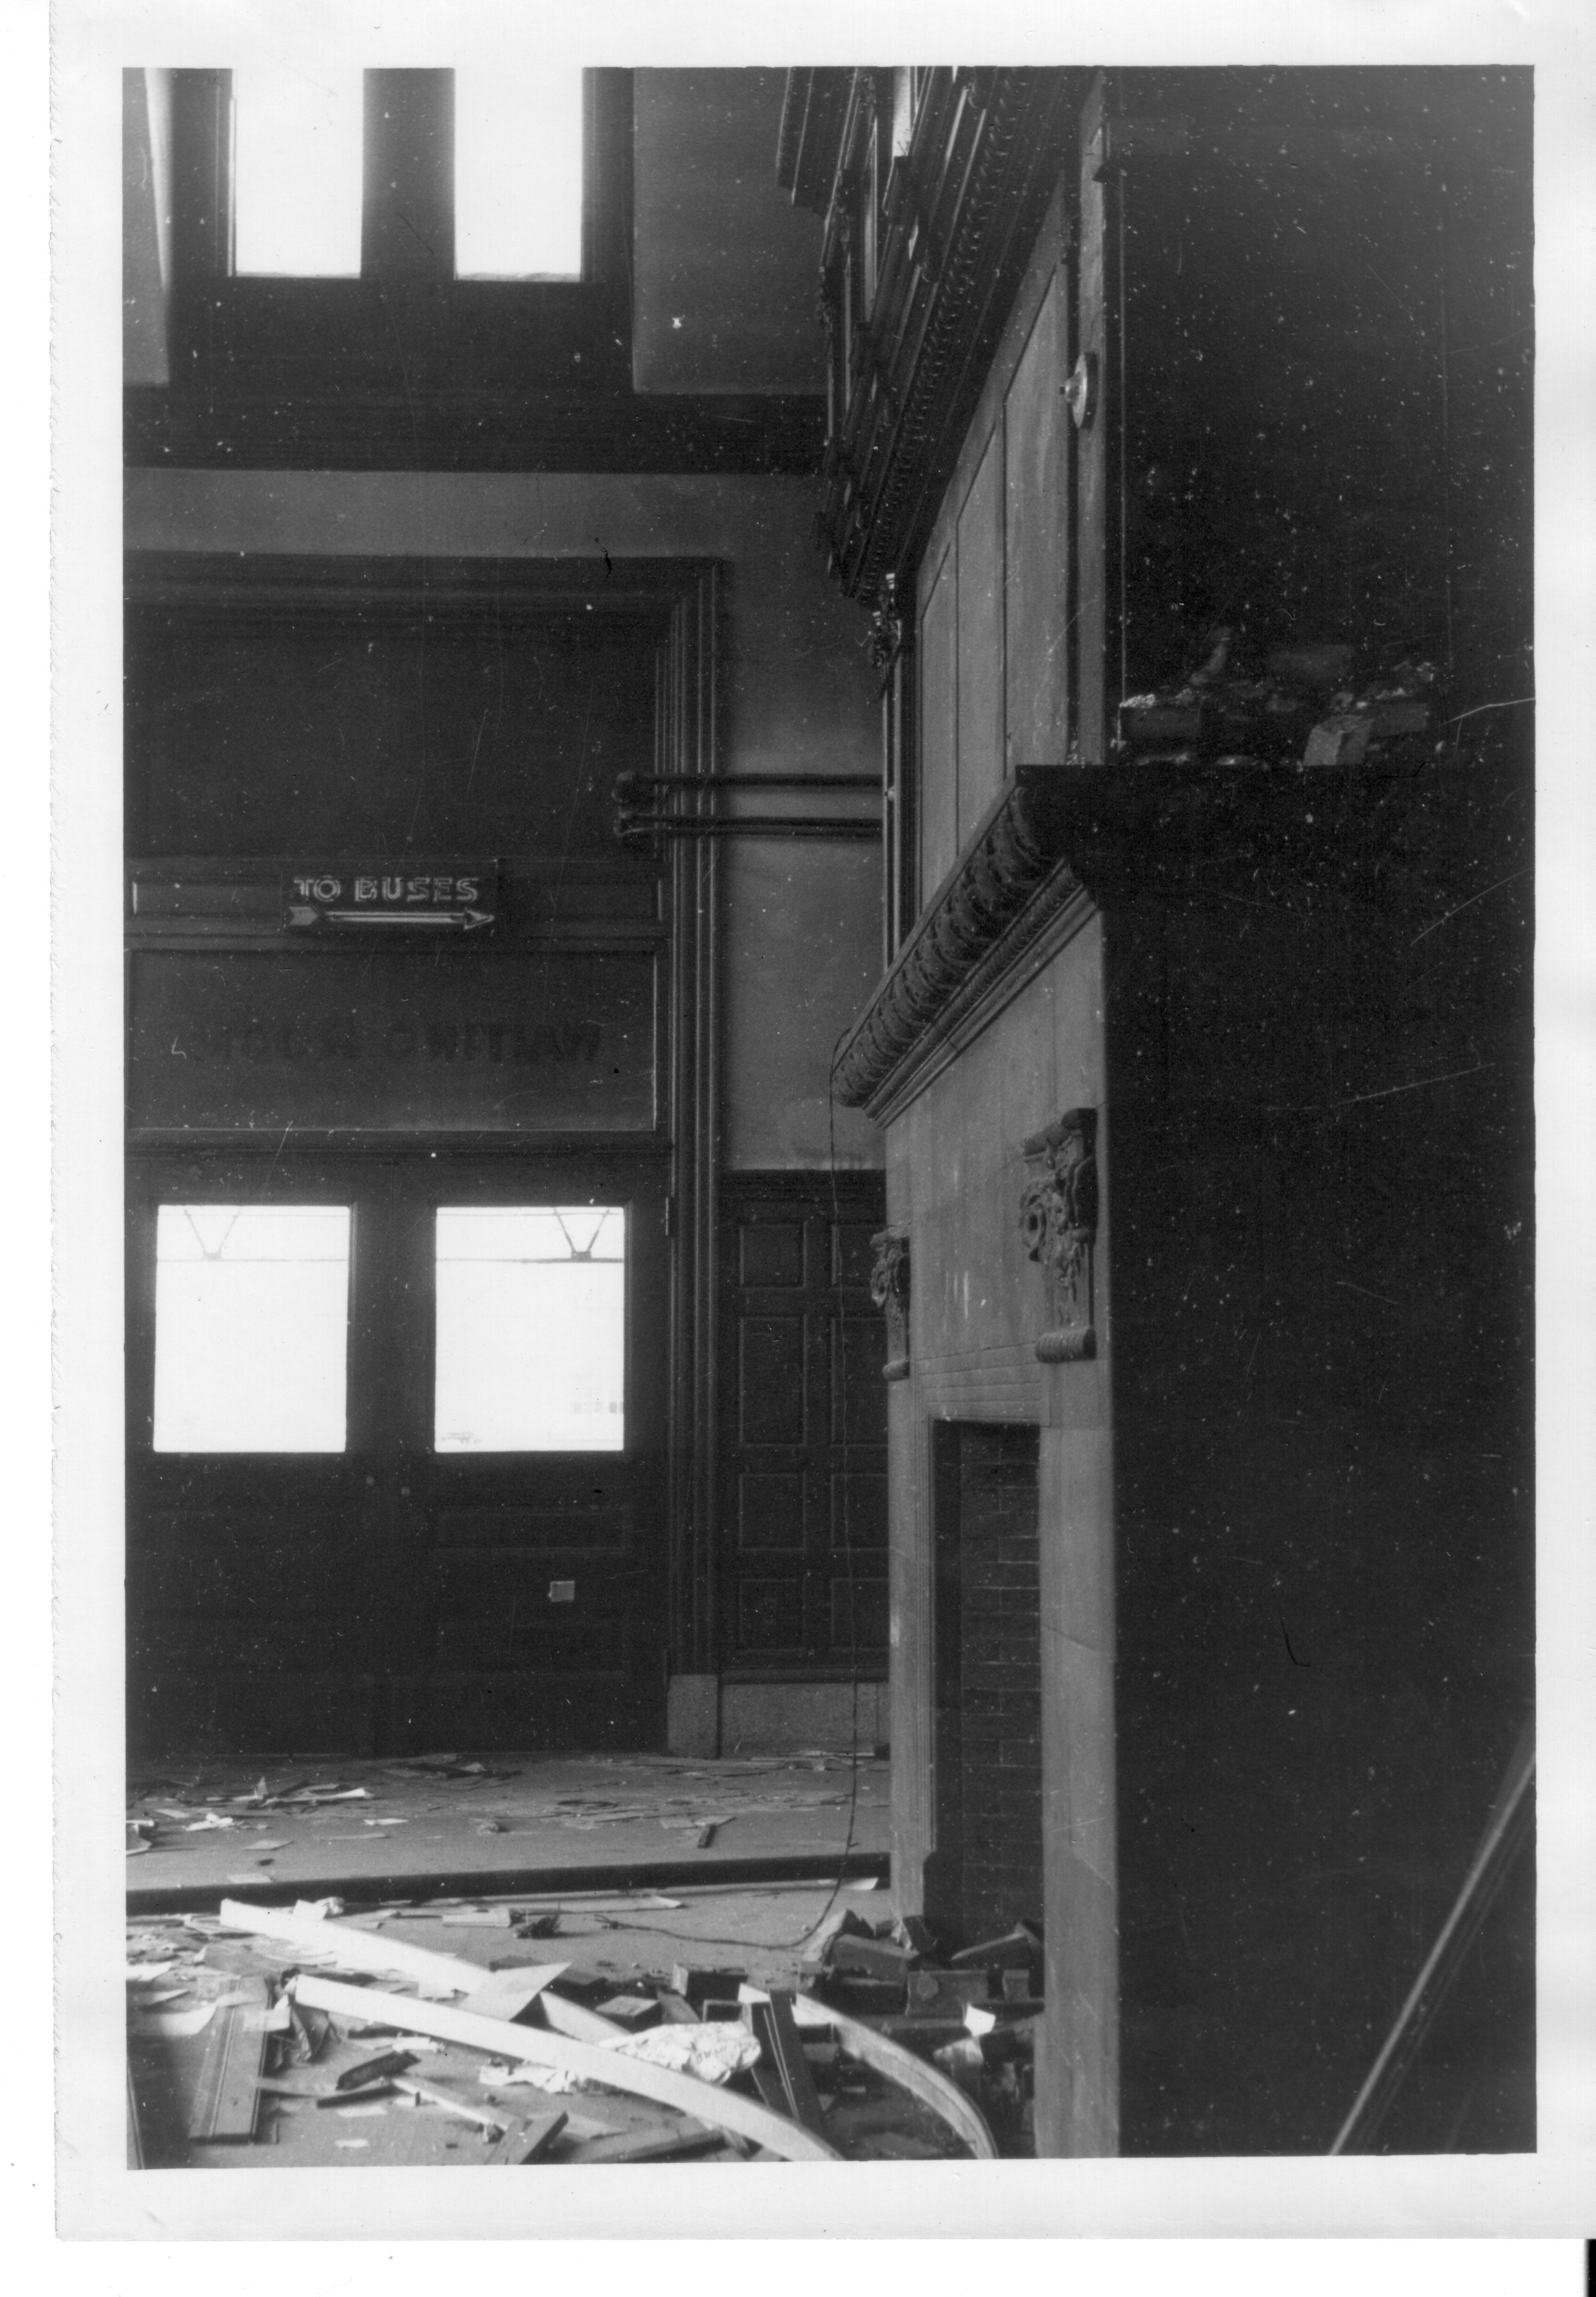 UnionStation_demoliton_interior5_1961_DORISIJOHNSON.jpg